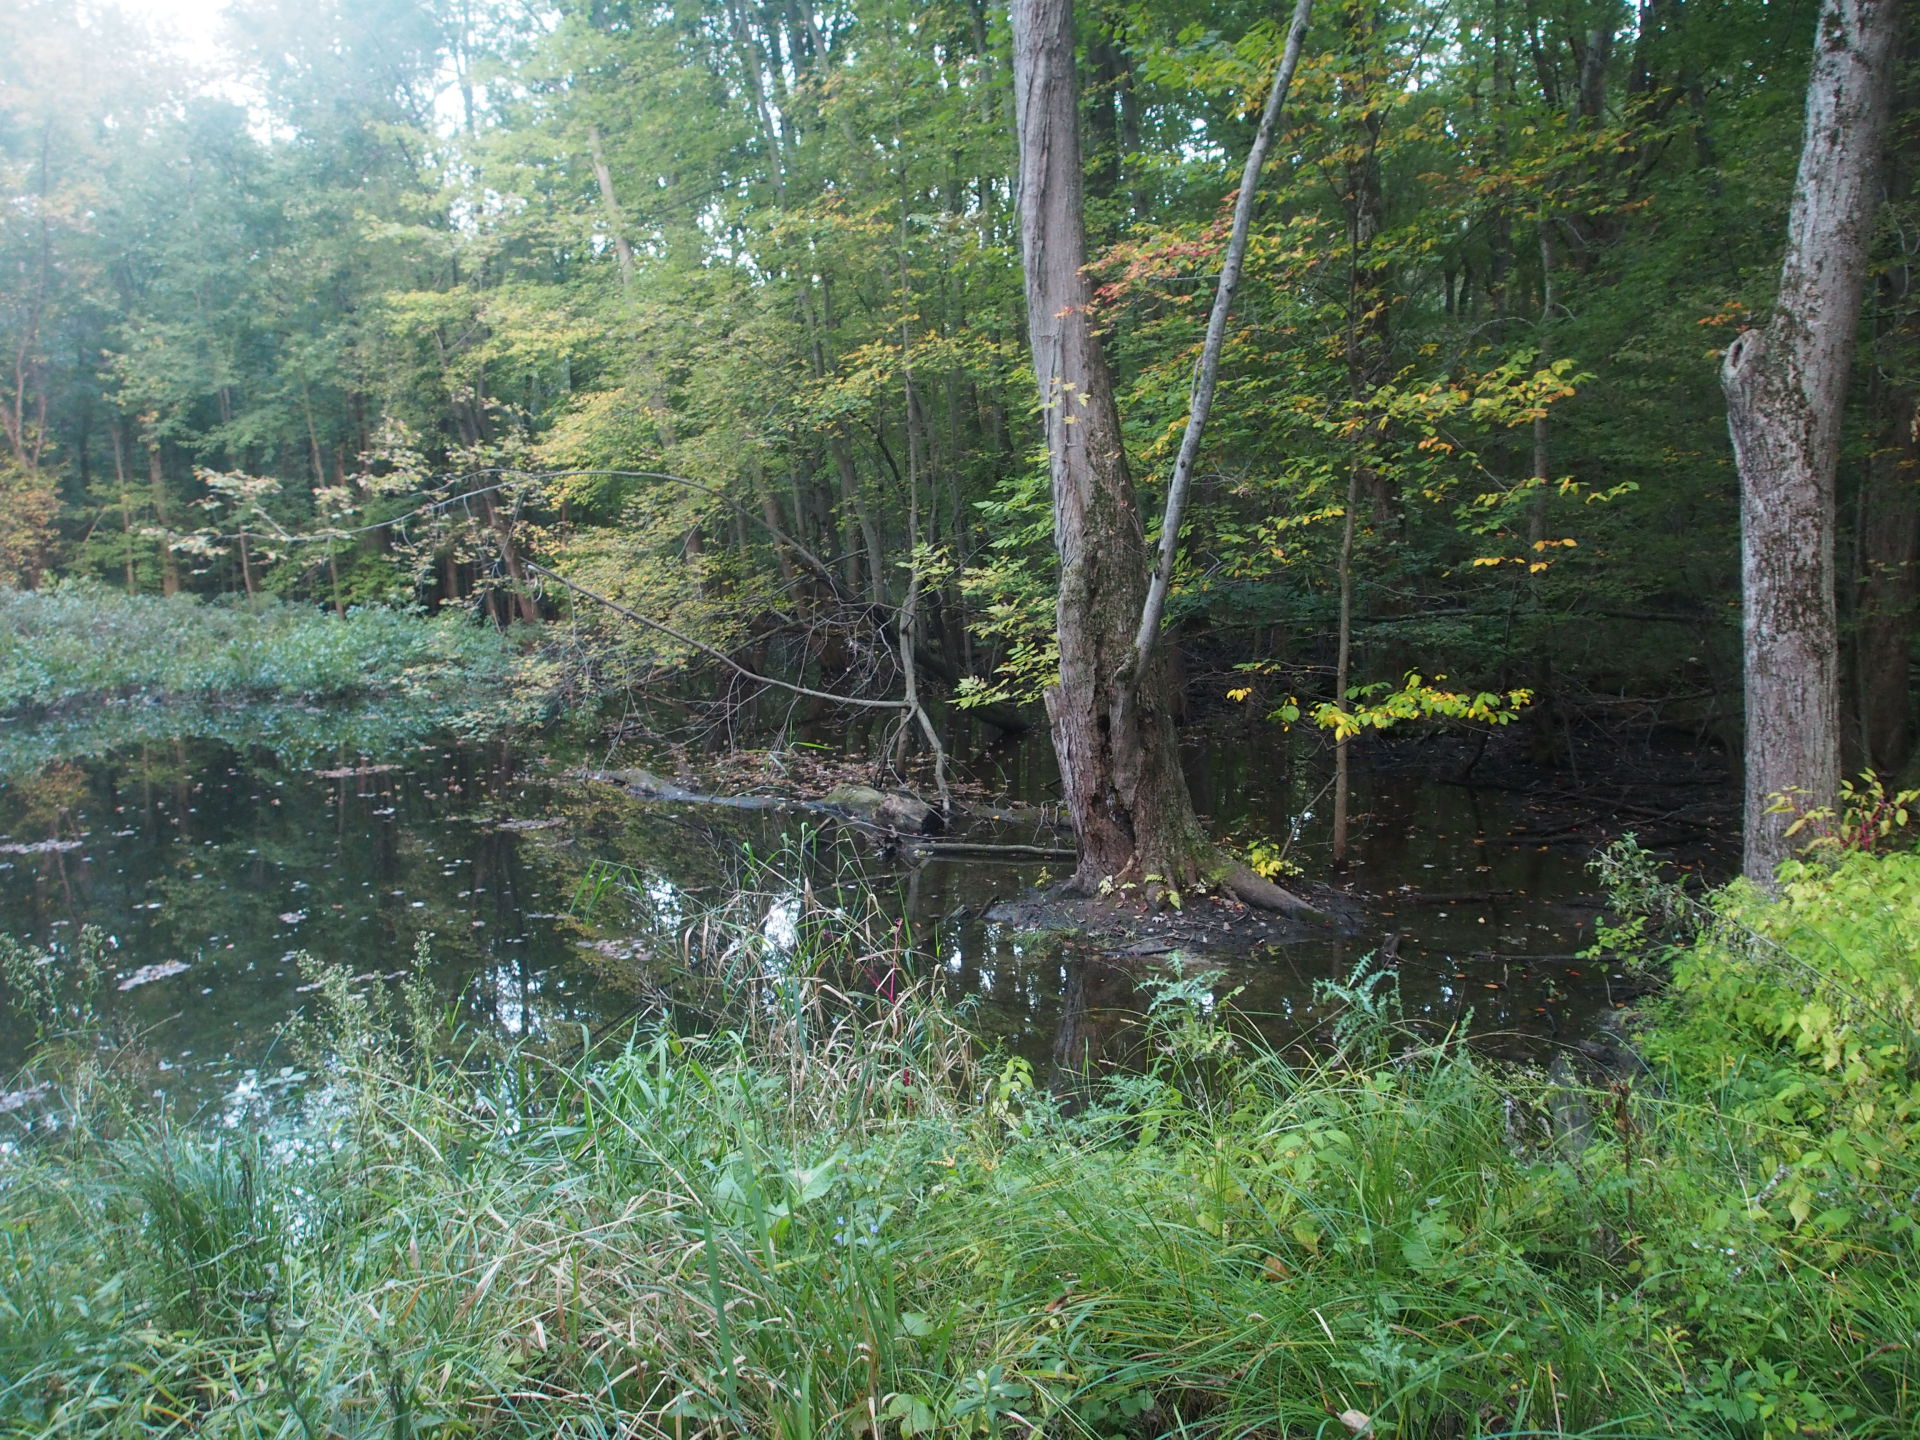 Wetlands in the woods